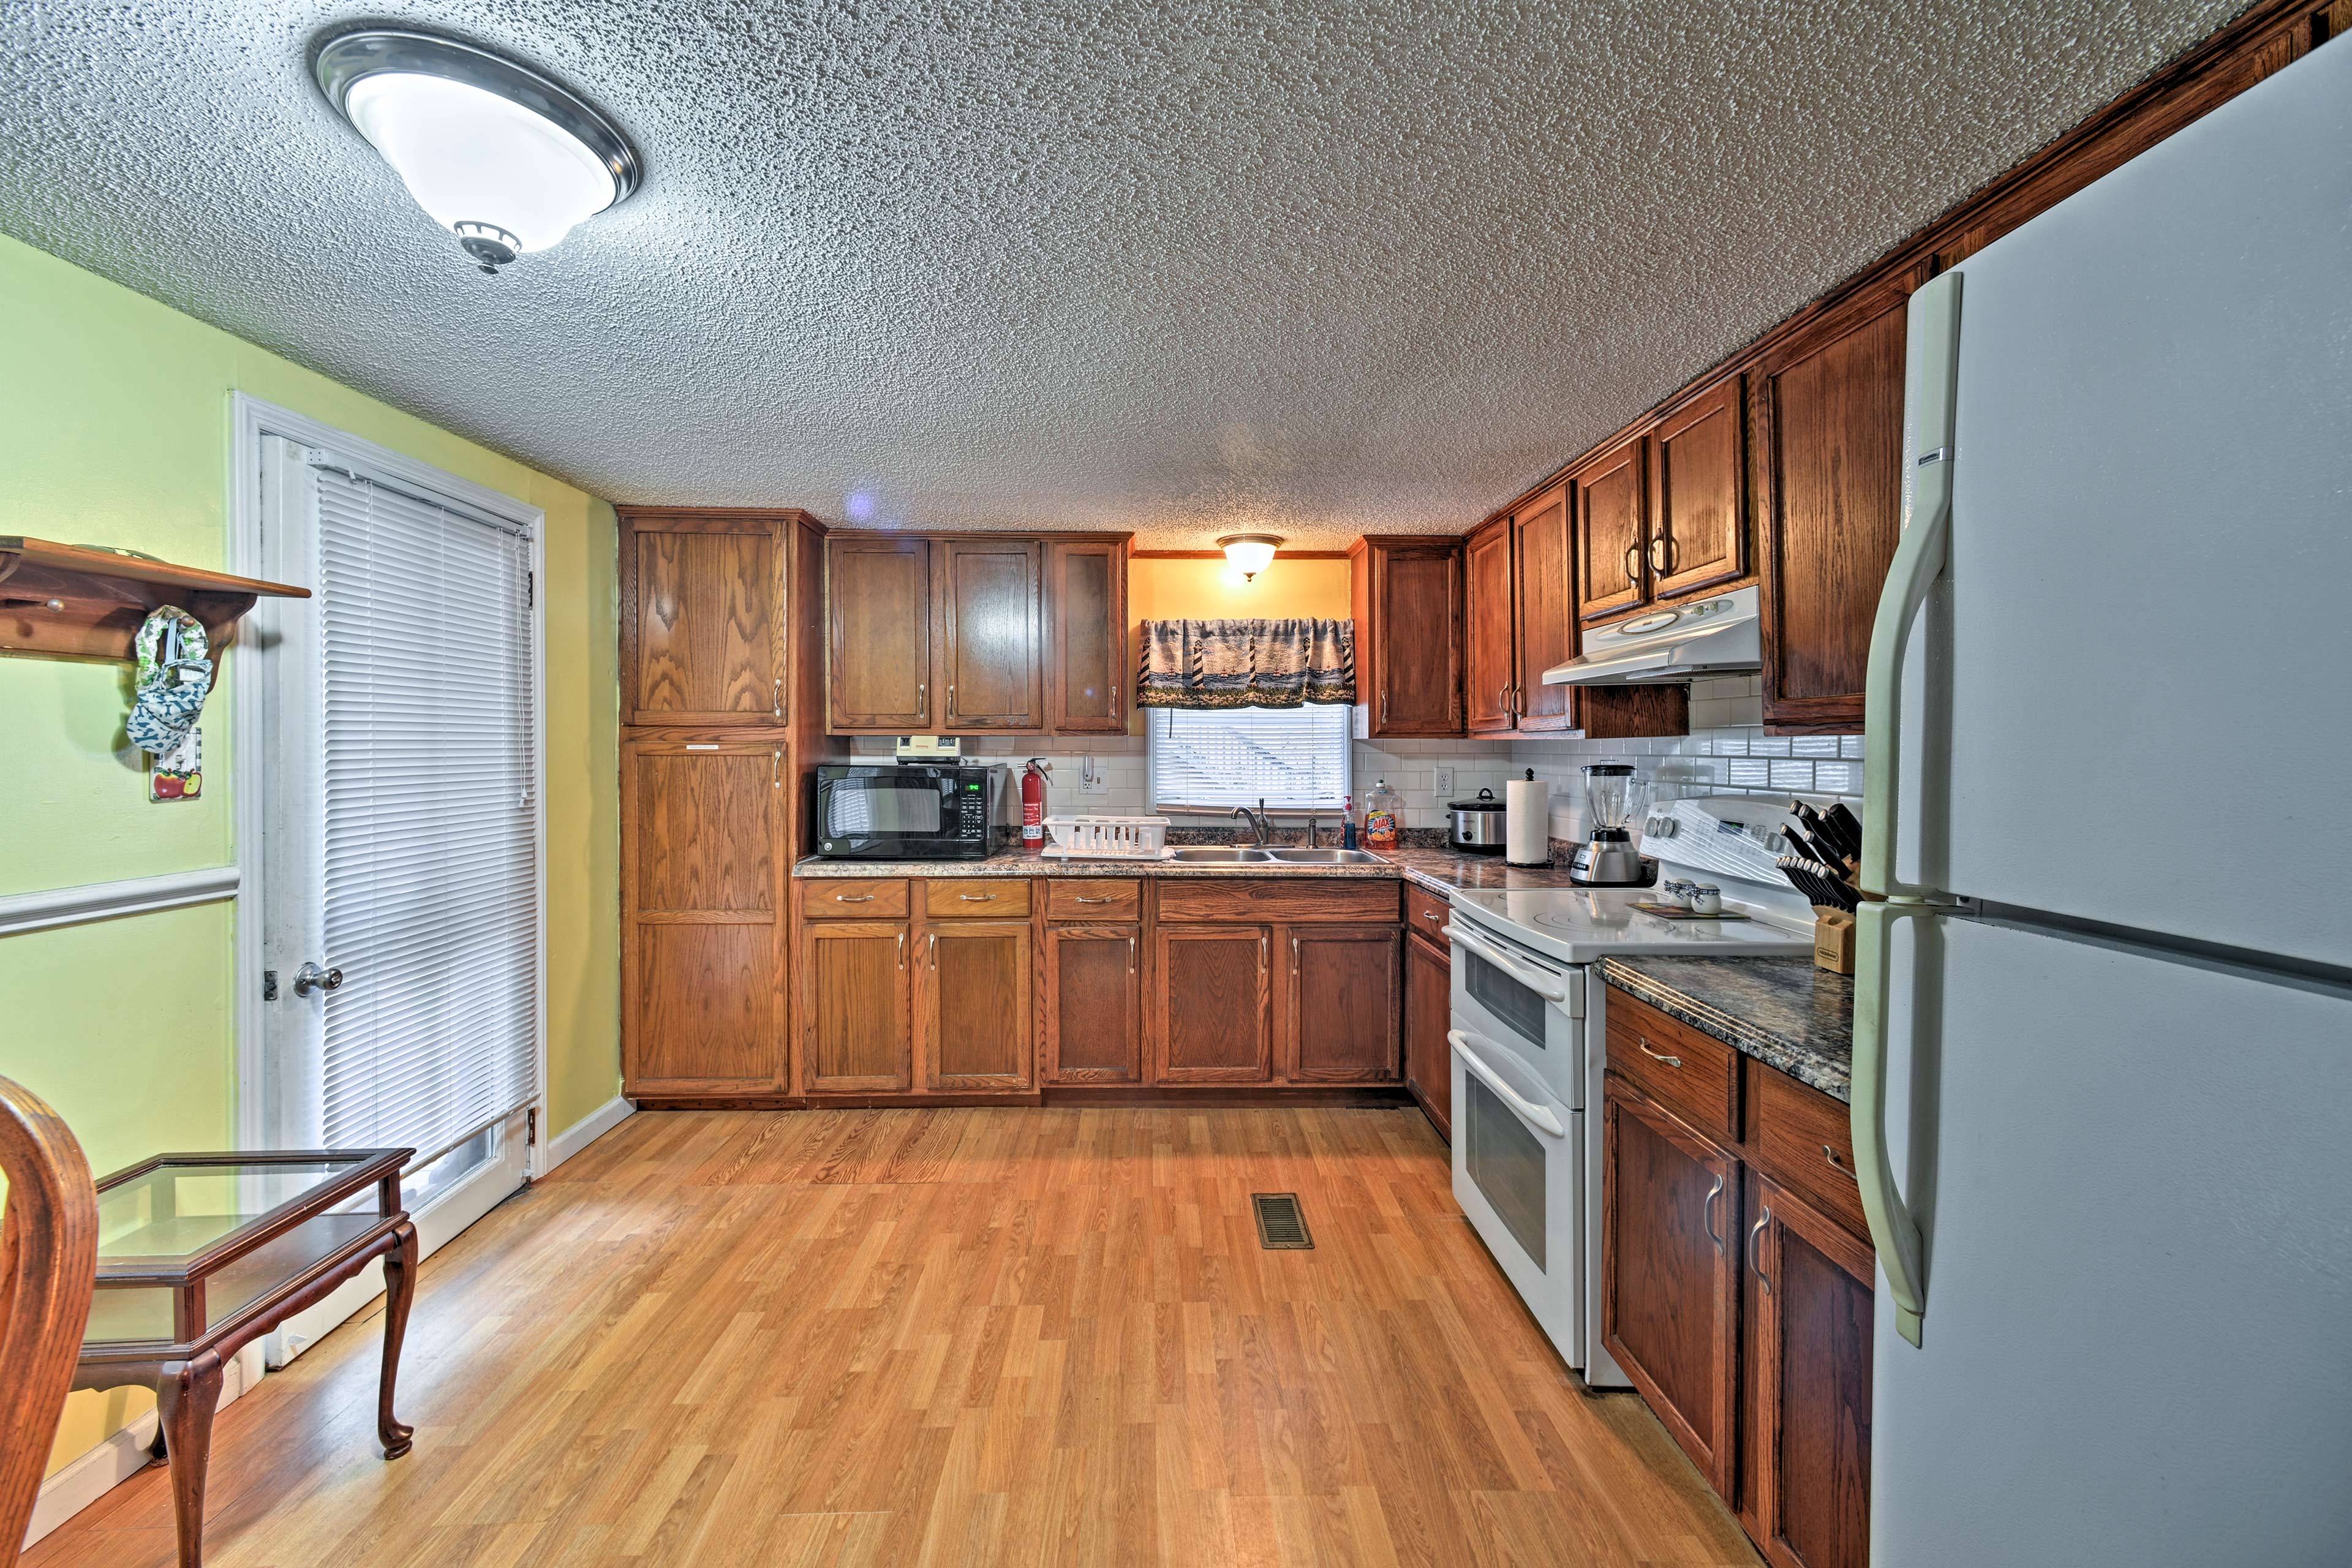 The kitchen comes fully equipped with everything you need for home-cooking.